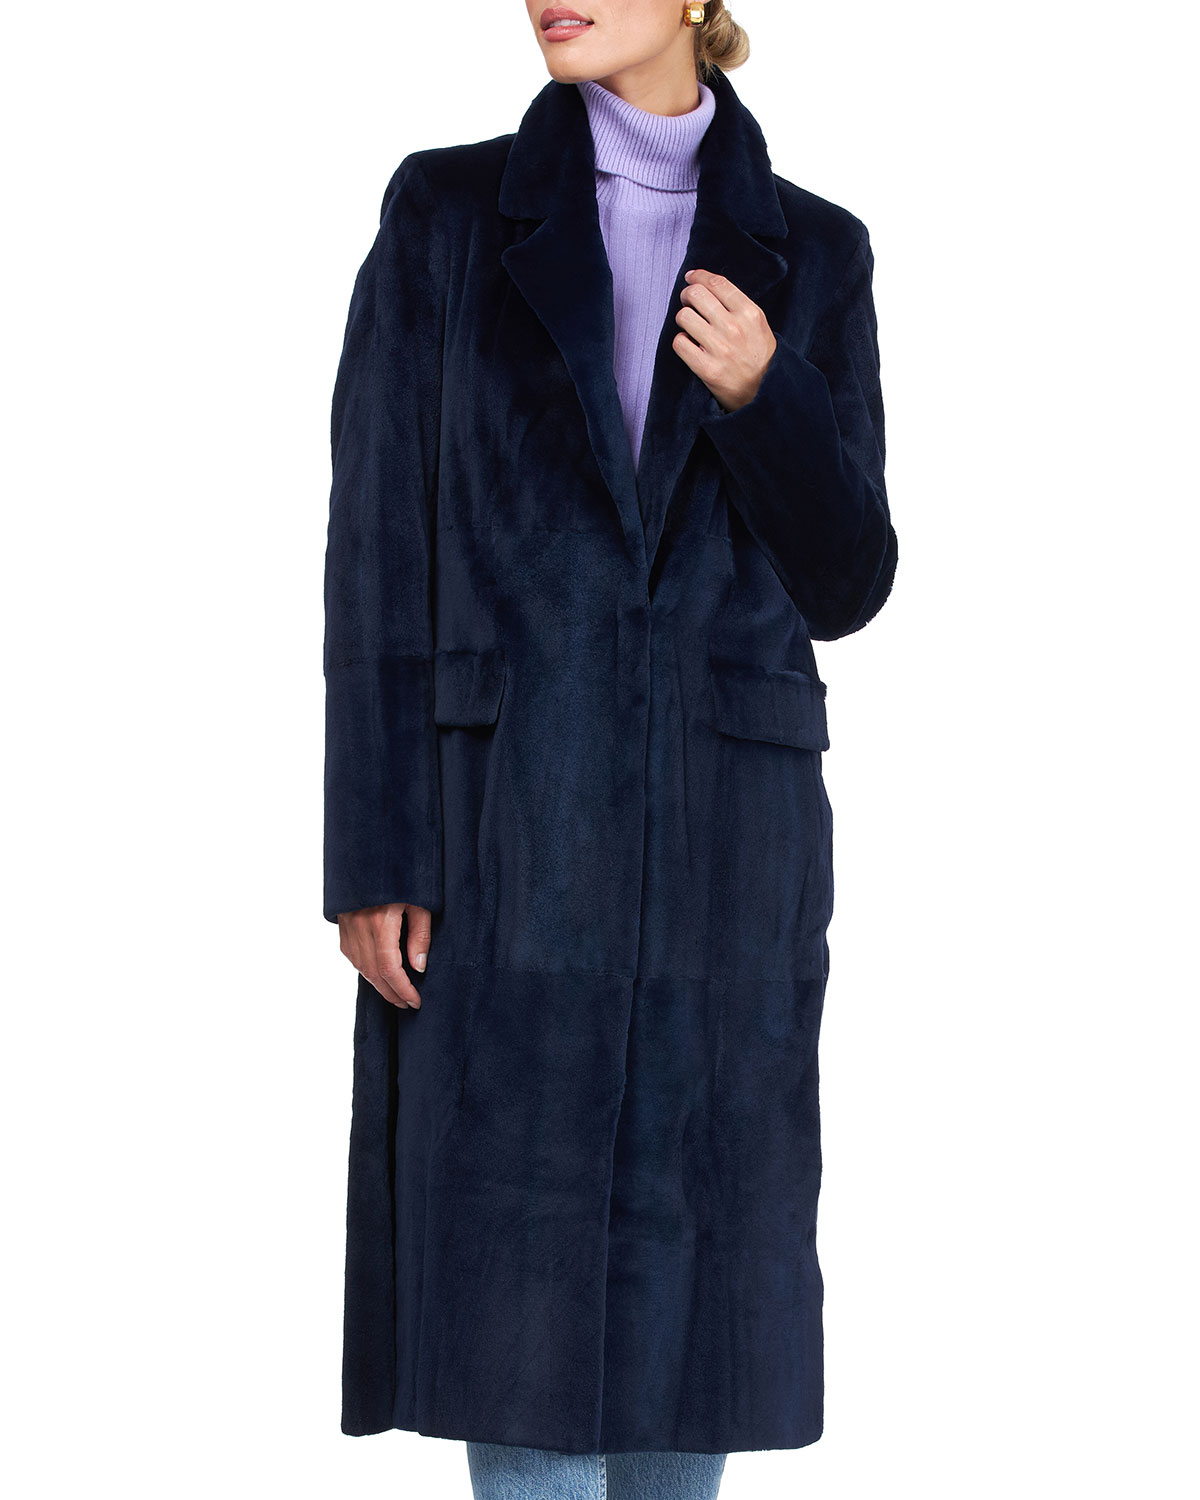 Burnett Sheared Mink Coat with Notched Collar